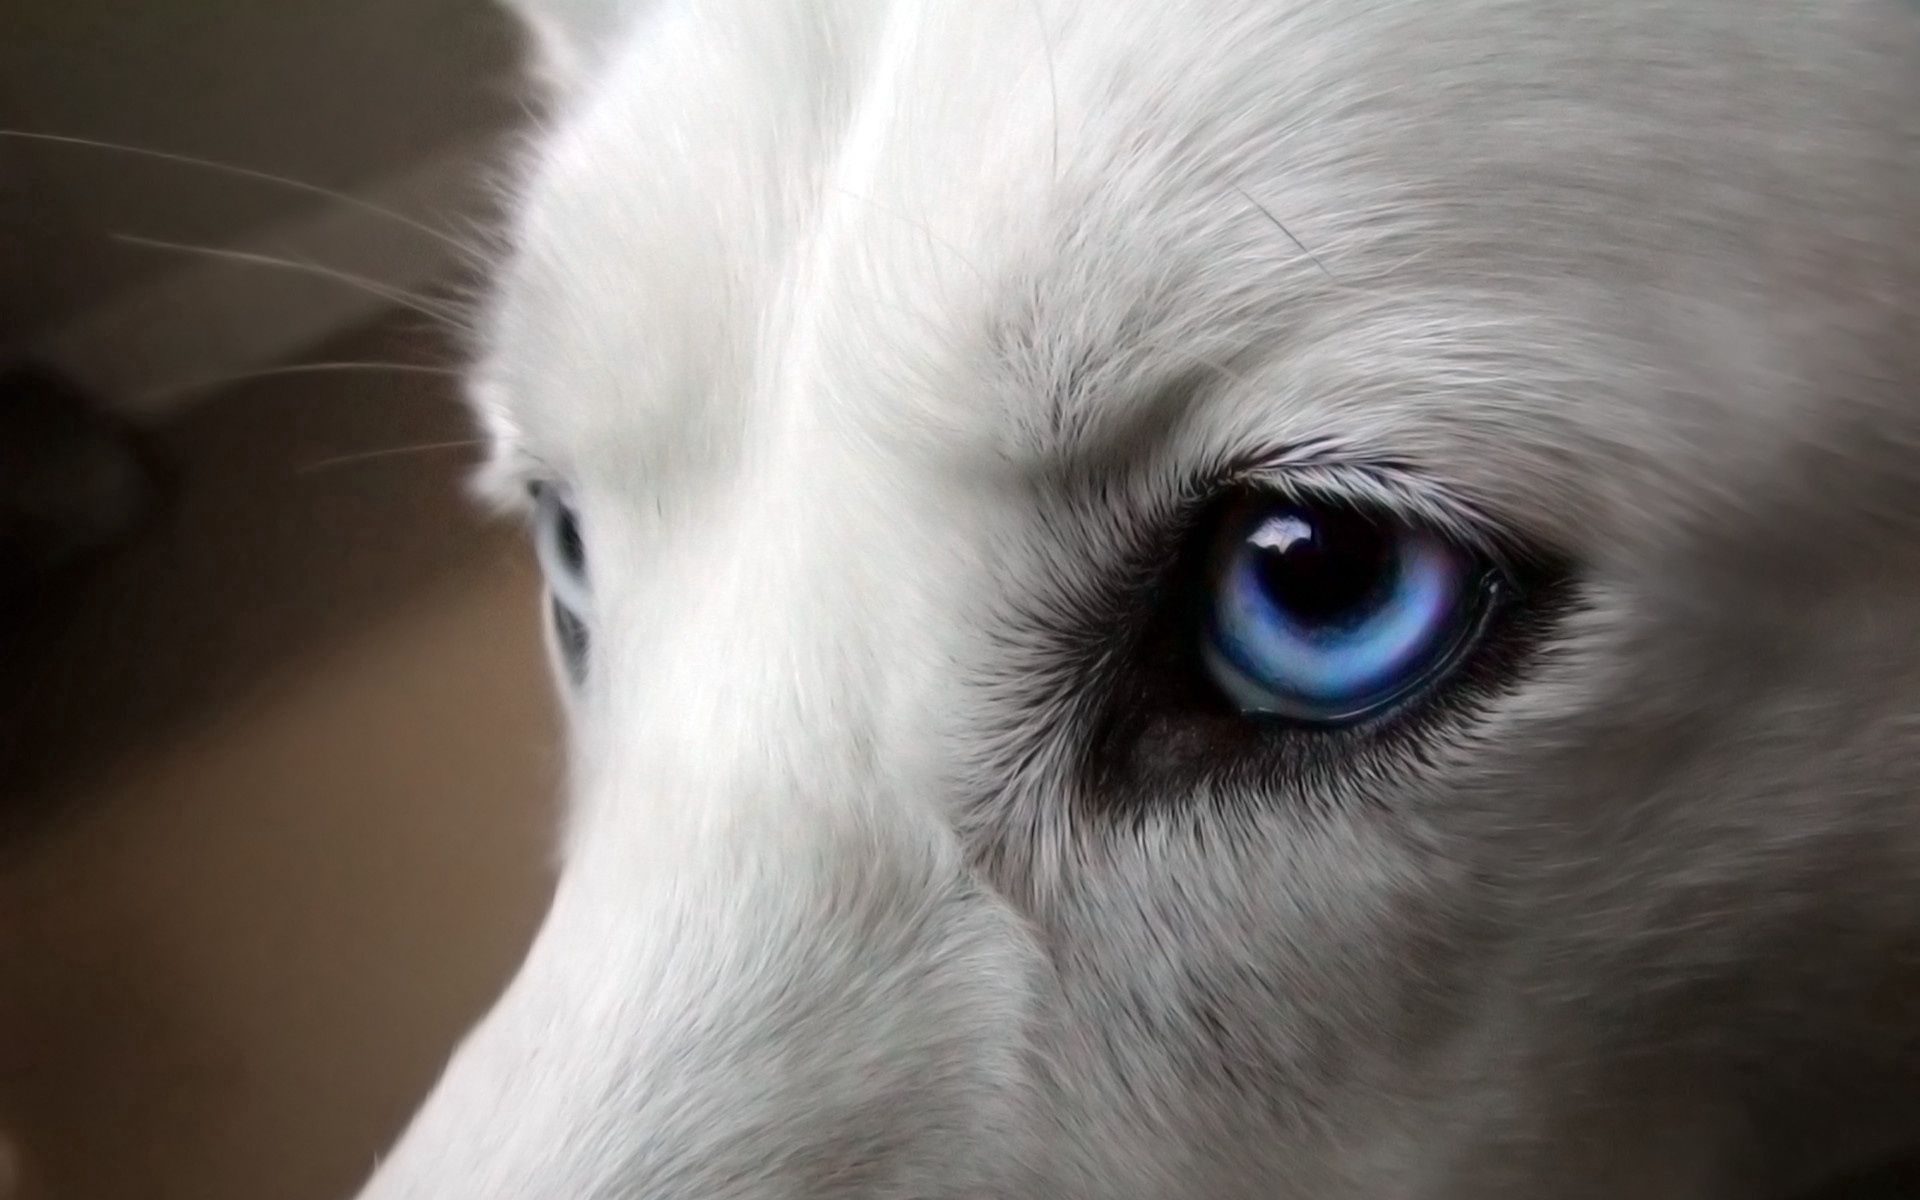 85606 download wallpaper Animals, Eyes, Dog, Blue Eyed, Blue-Eyed, Wool screensavers and pictures for free